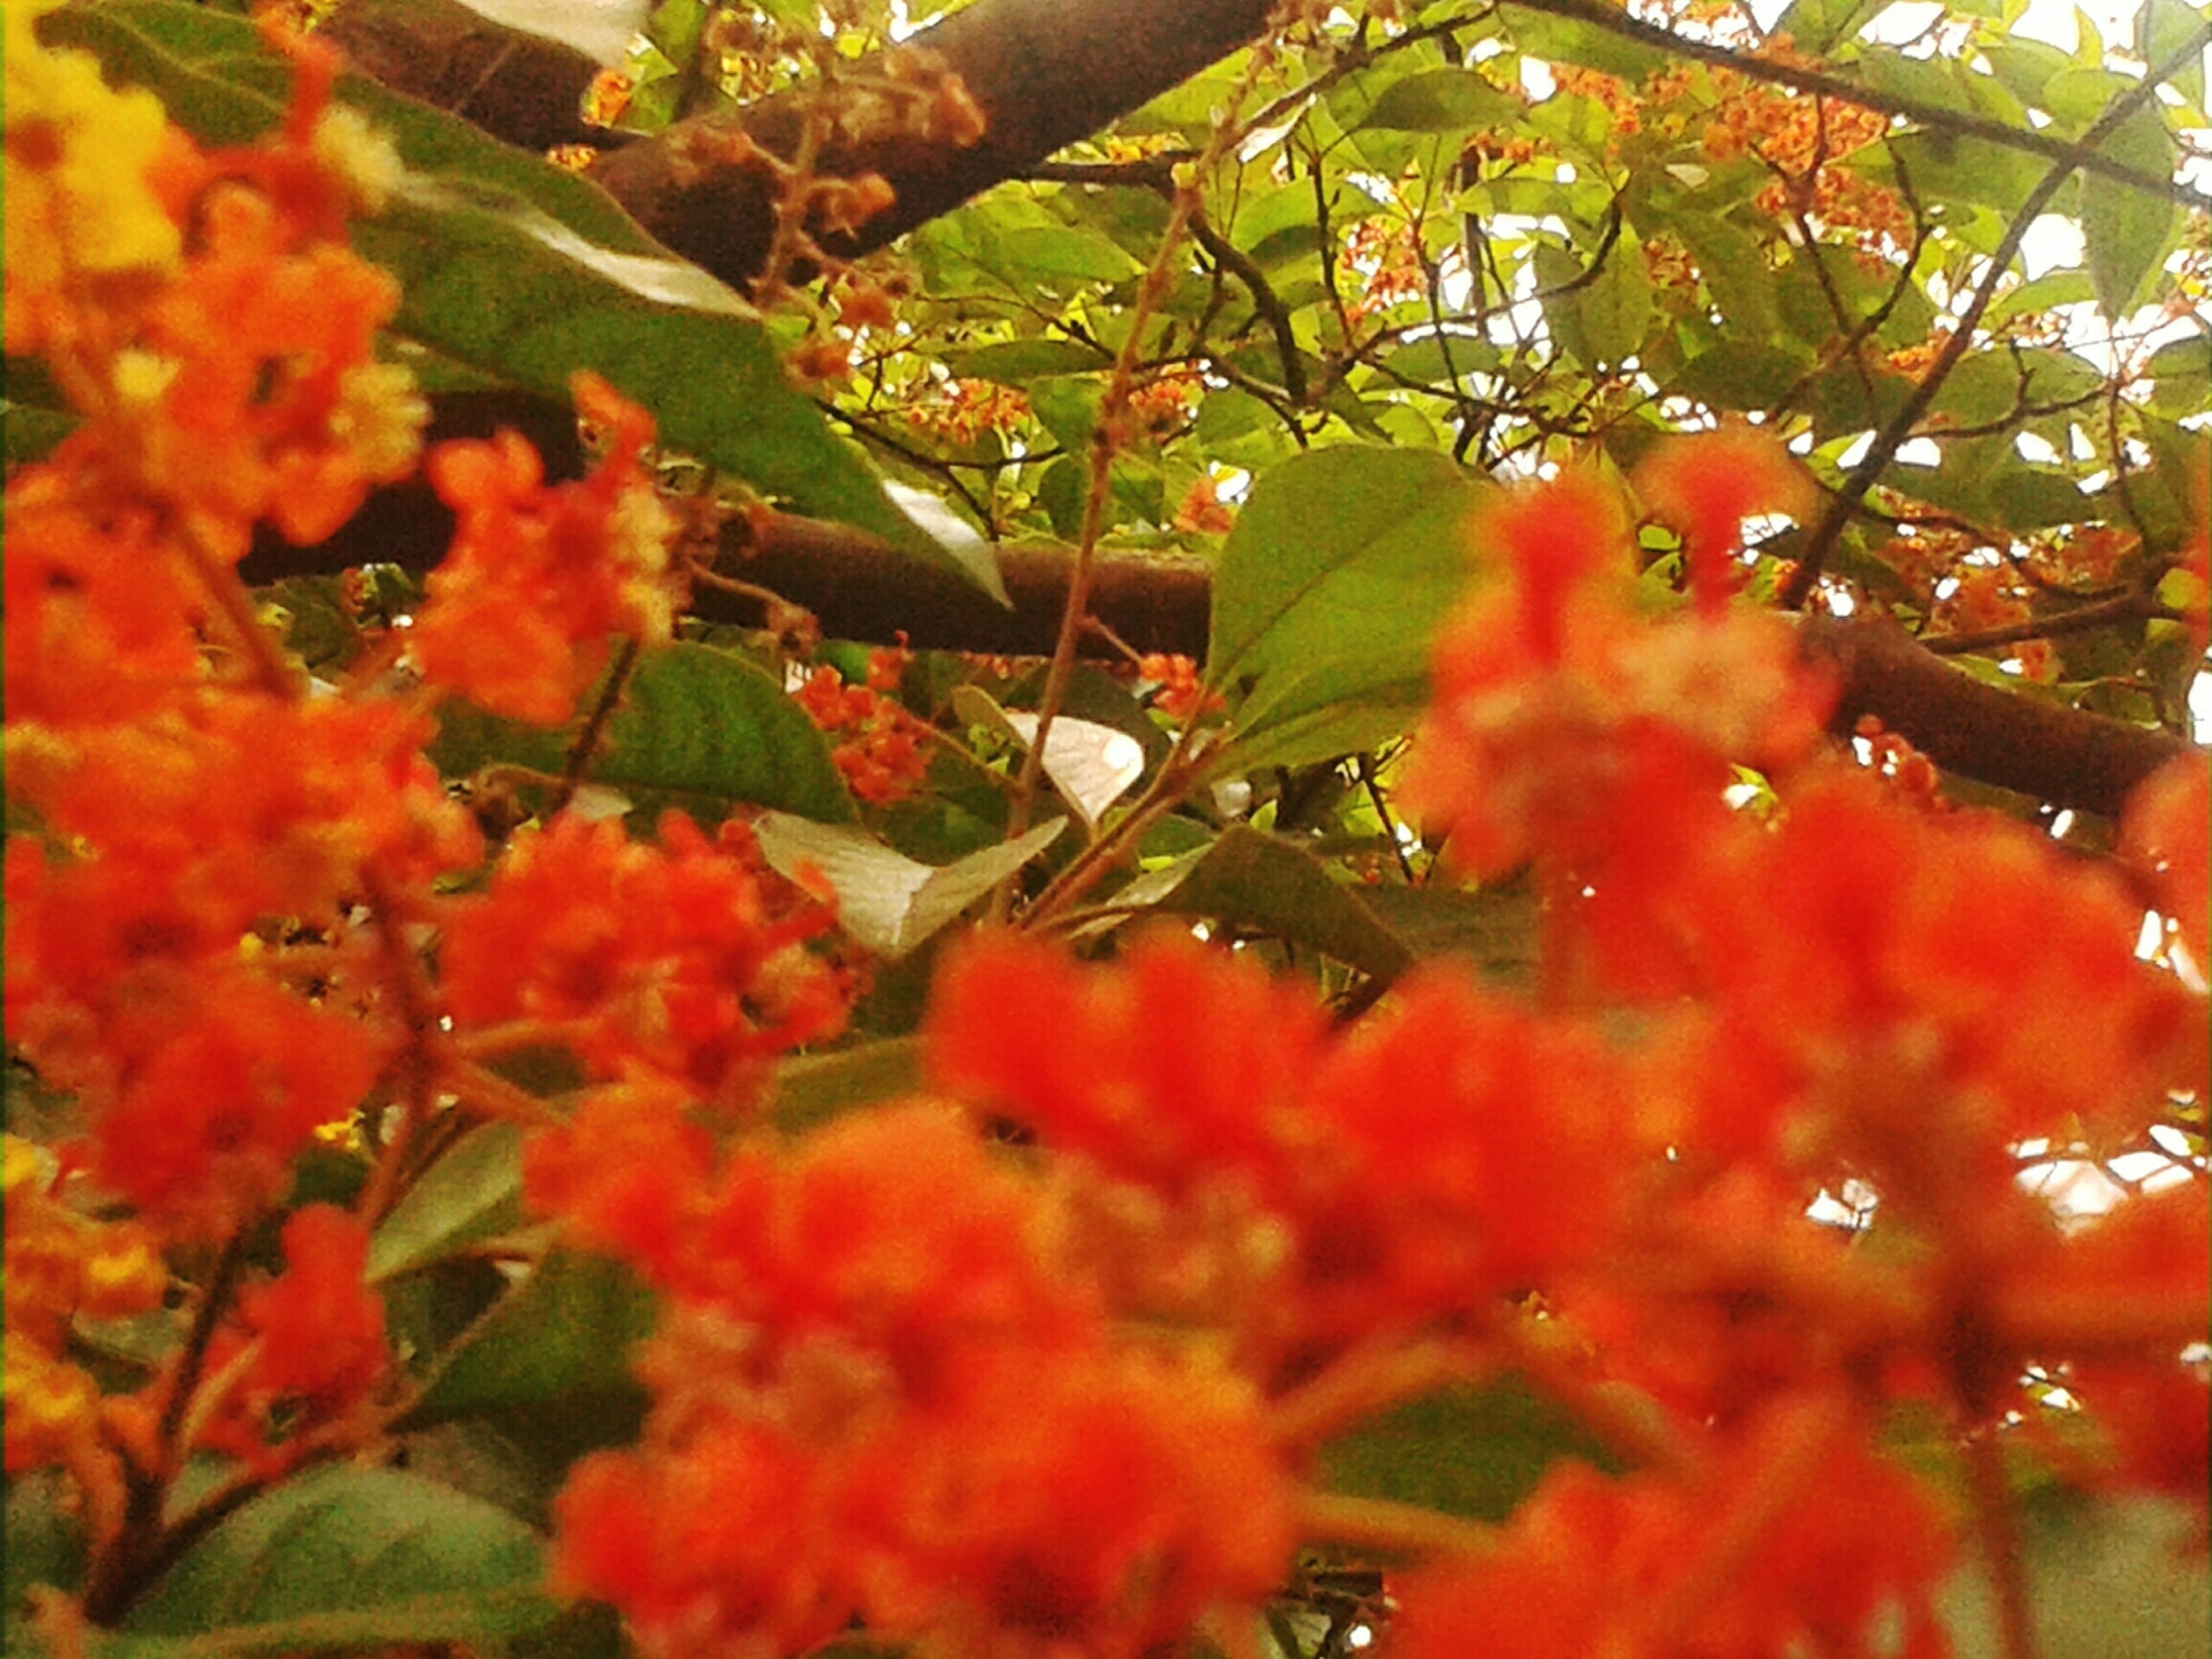 red, tree, growth, autumn, season, leaf, branch, change, freshness, beauty in nature, nature, close-up, focus on foreground, orange color, selective focus, day, fragility, flower, outdoors, low angle view